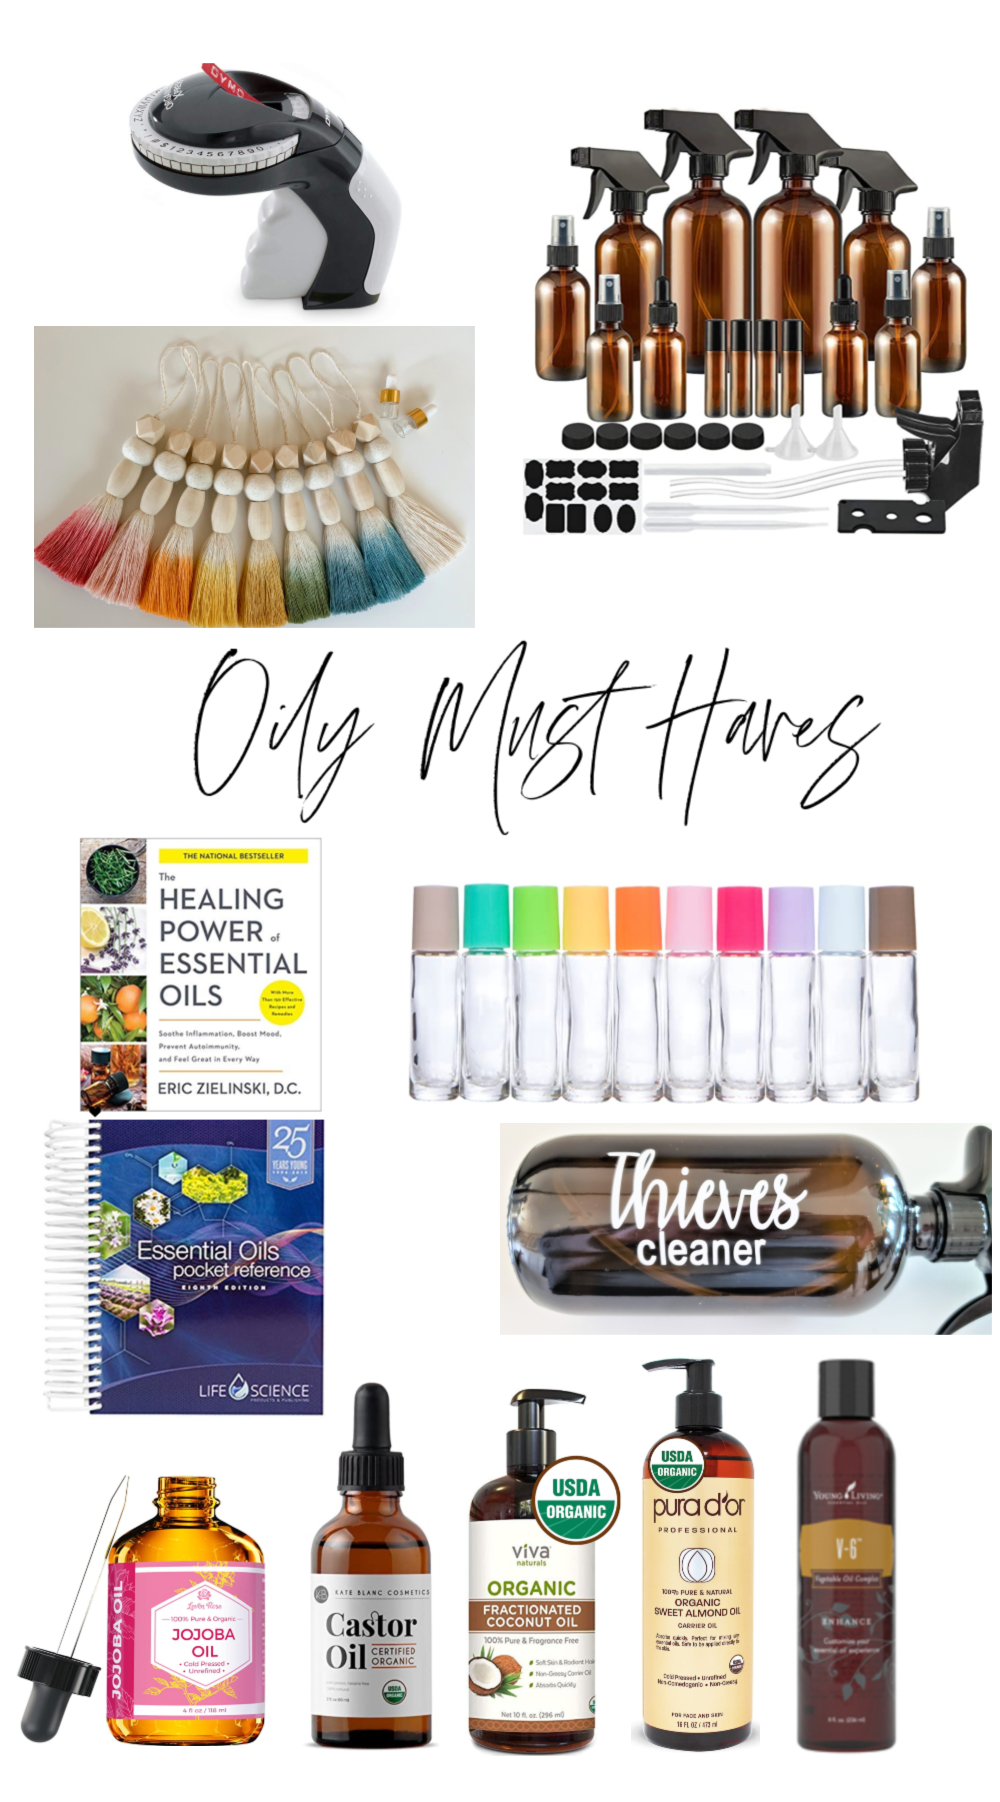 Oily Must Haves